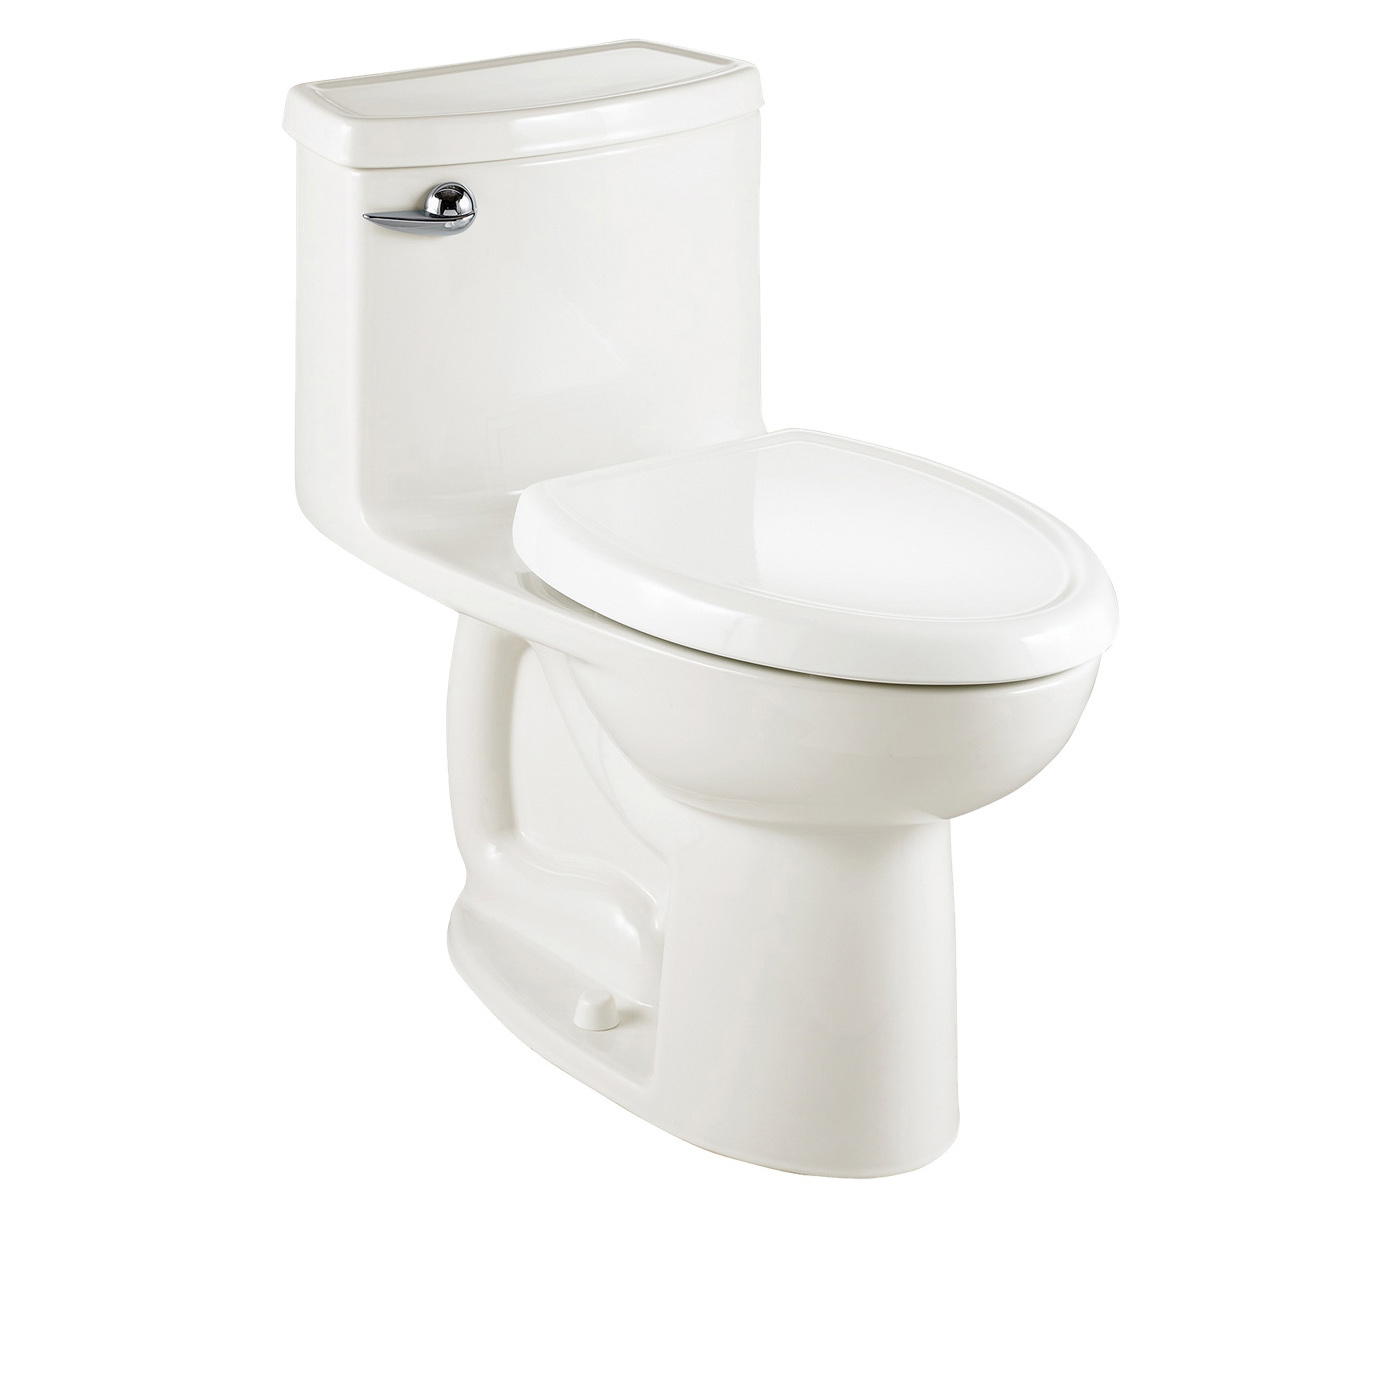 American Standard 2403.128.020 Cadet® 3 Flowise® Right Height™ 1-Piece Toilet With (2) Bolt Caps, Elongated Bowl, 16-1/2 in H Rim, 1.28 gpf, White, Import